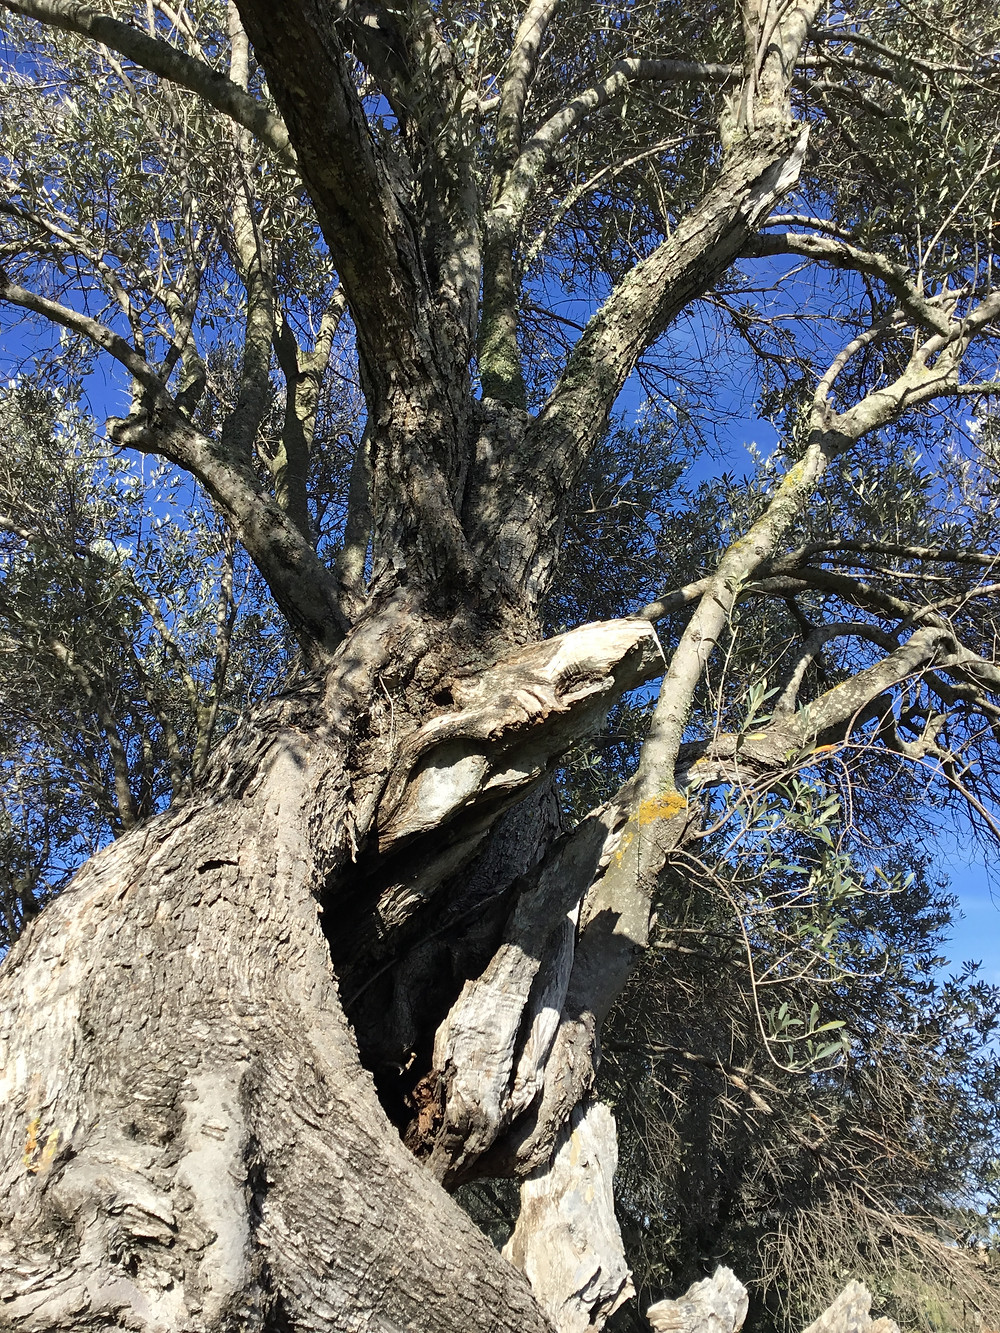 view of ancient olive tree, viewed from a low angle, showing rough texture of bark and dead wood coming out of a hollow in the old tree. Strong new green growth can be seen on the branches that still emerge from the trunk, and that reach into a deep blue sky.